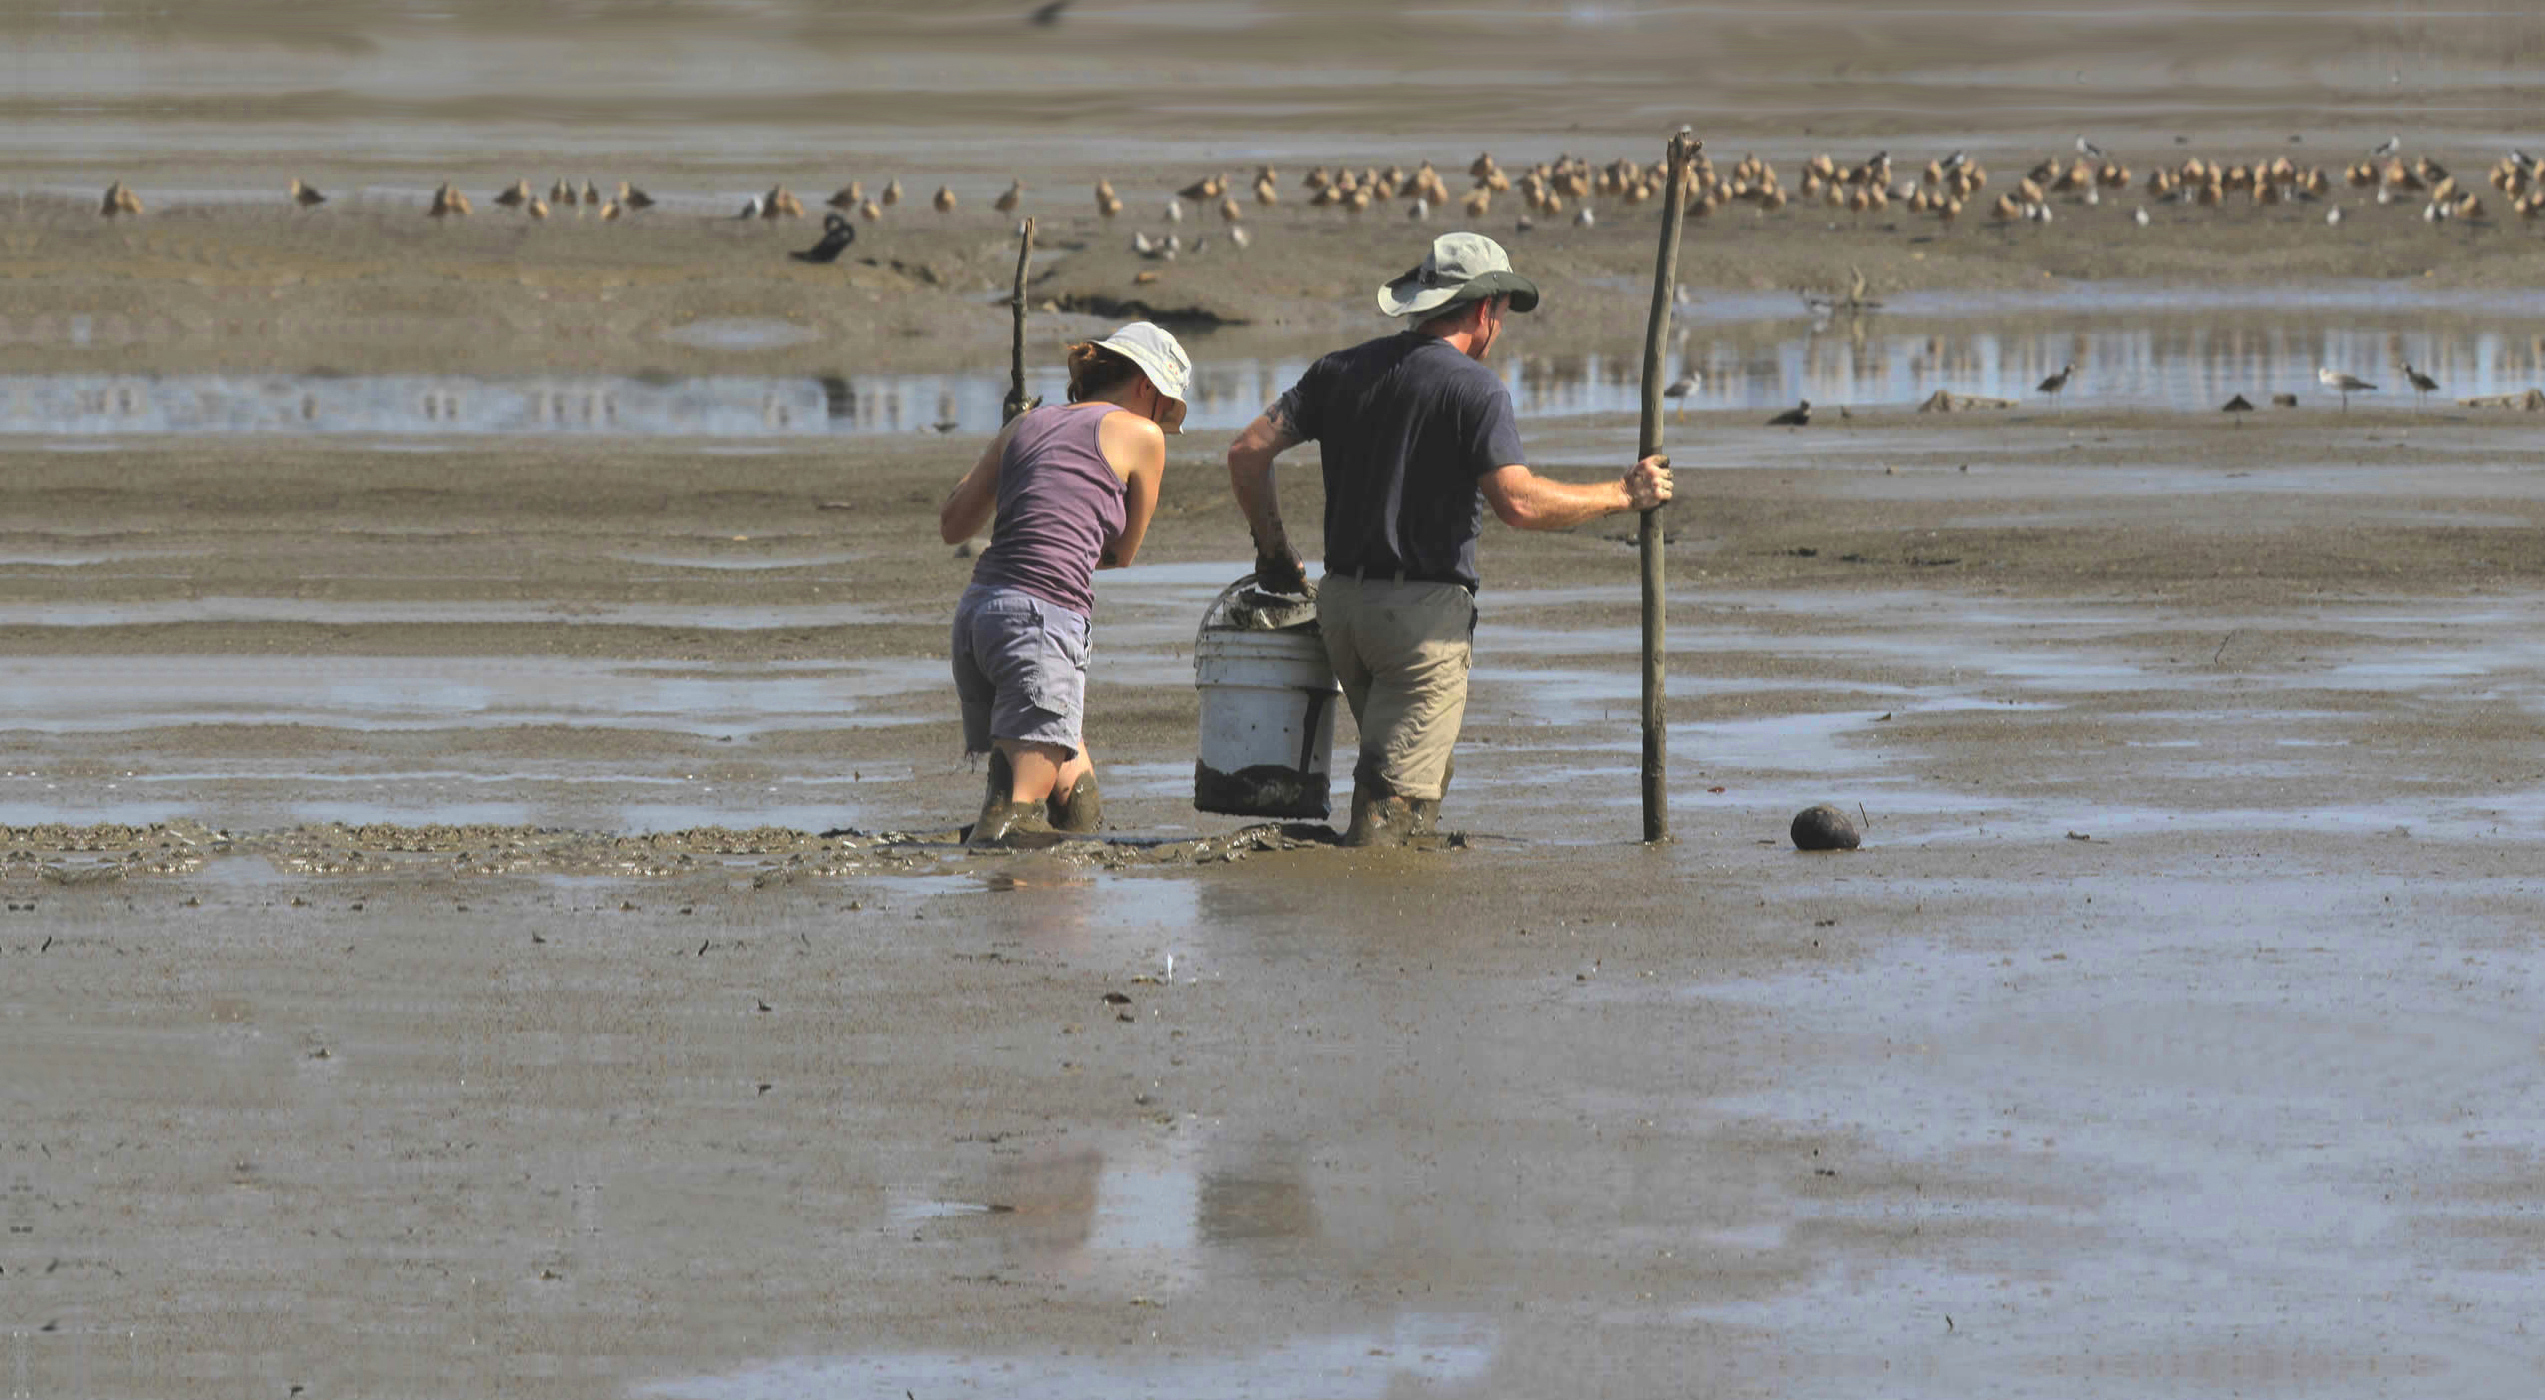 Workers on a Panama mudflat. Photo by the Center for Conservation Biology.